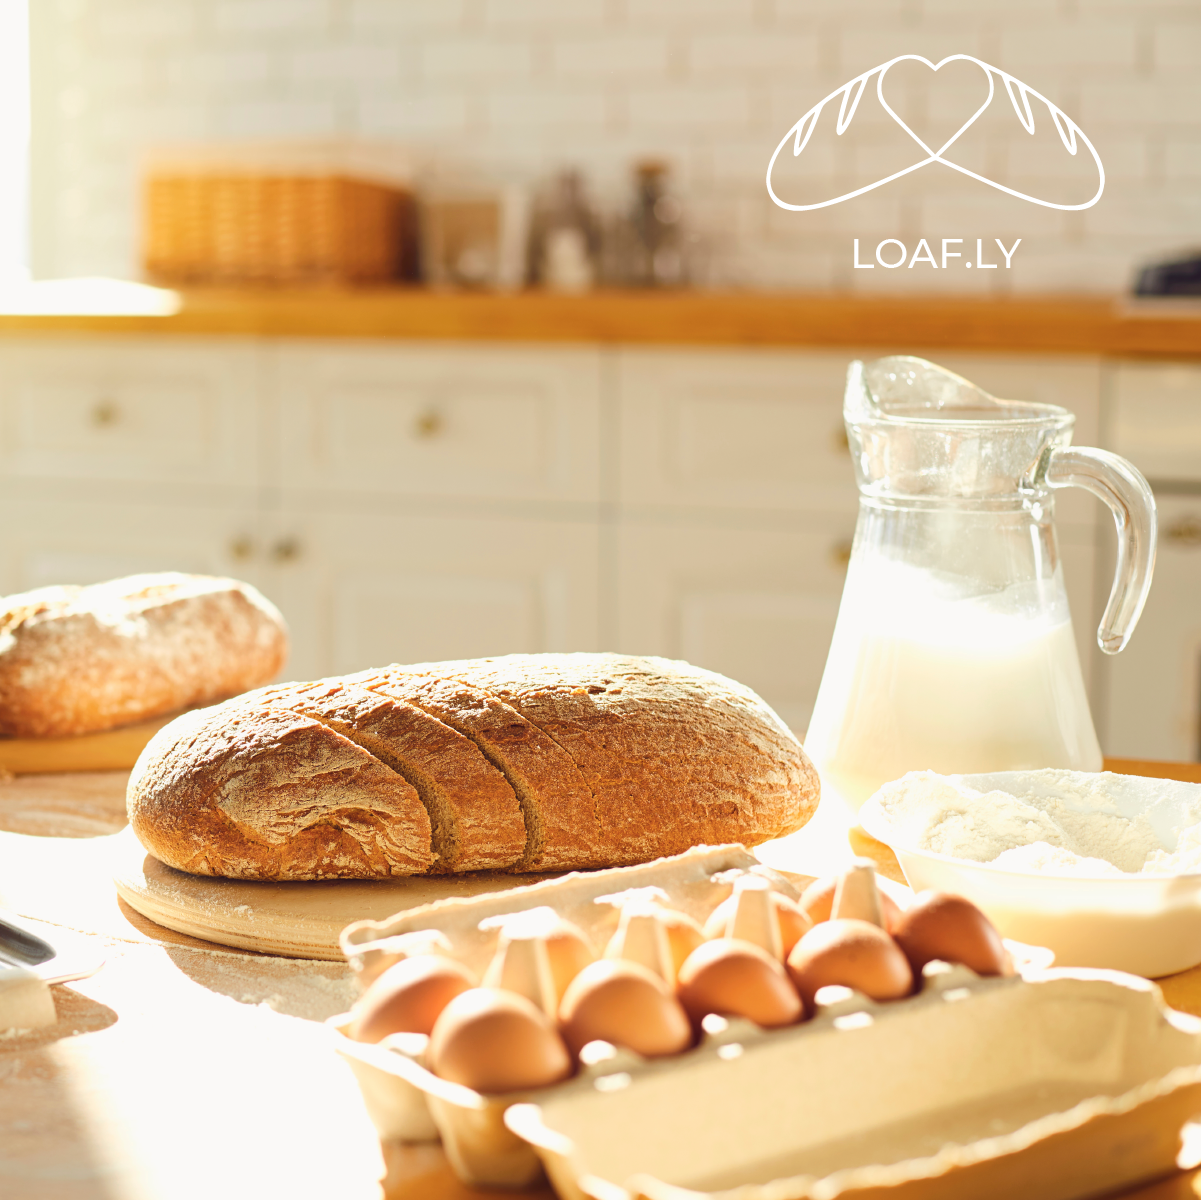 1607329774_loaf.ly_giftcard-01.png